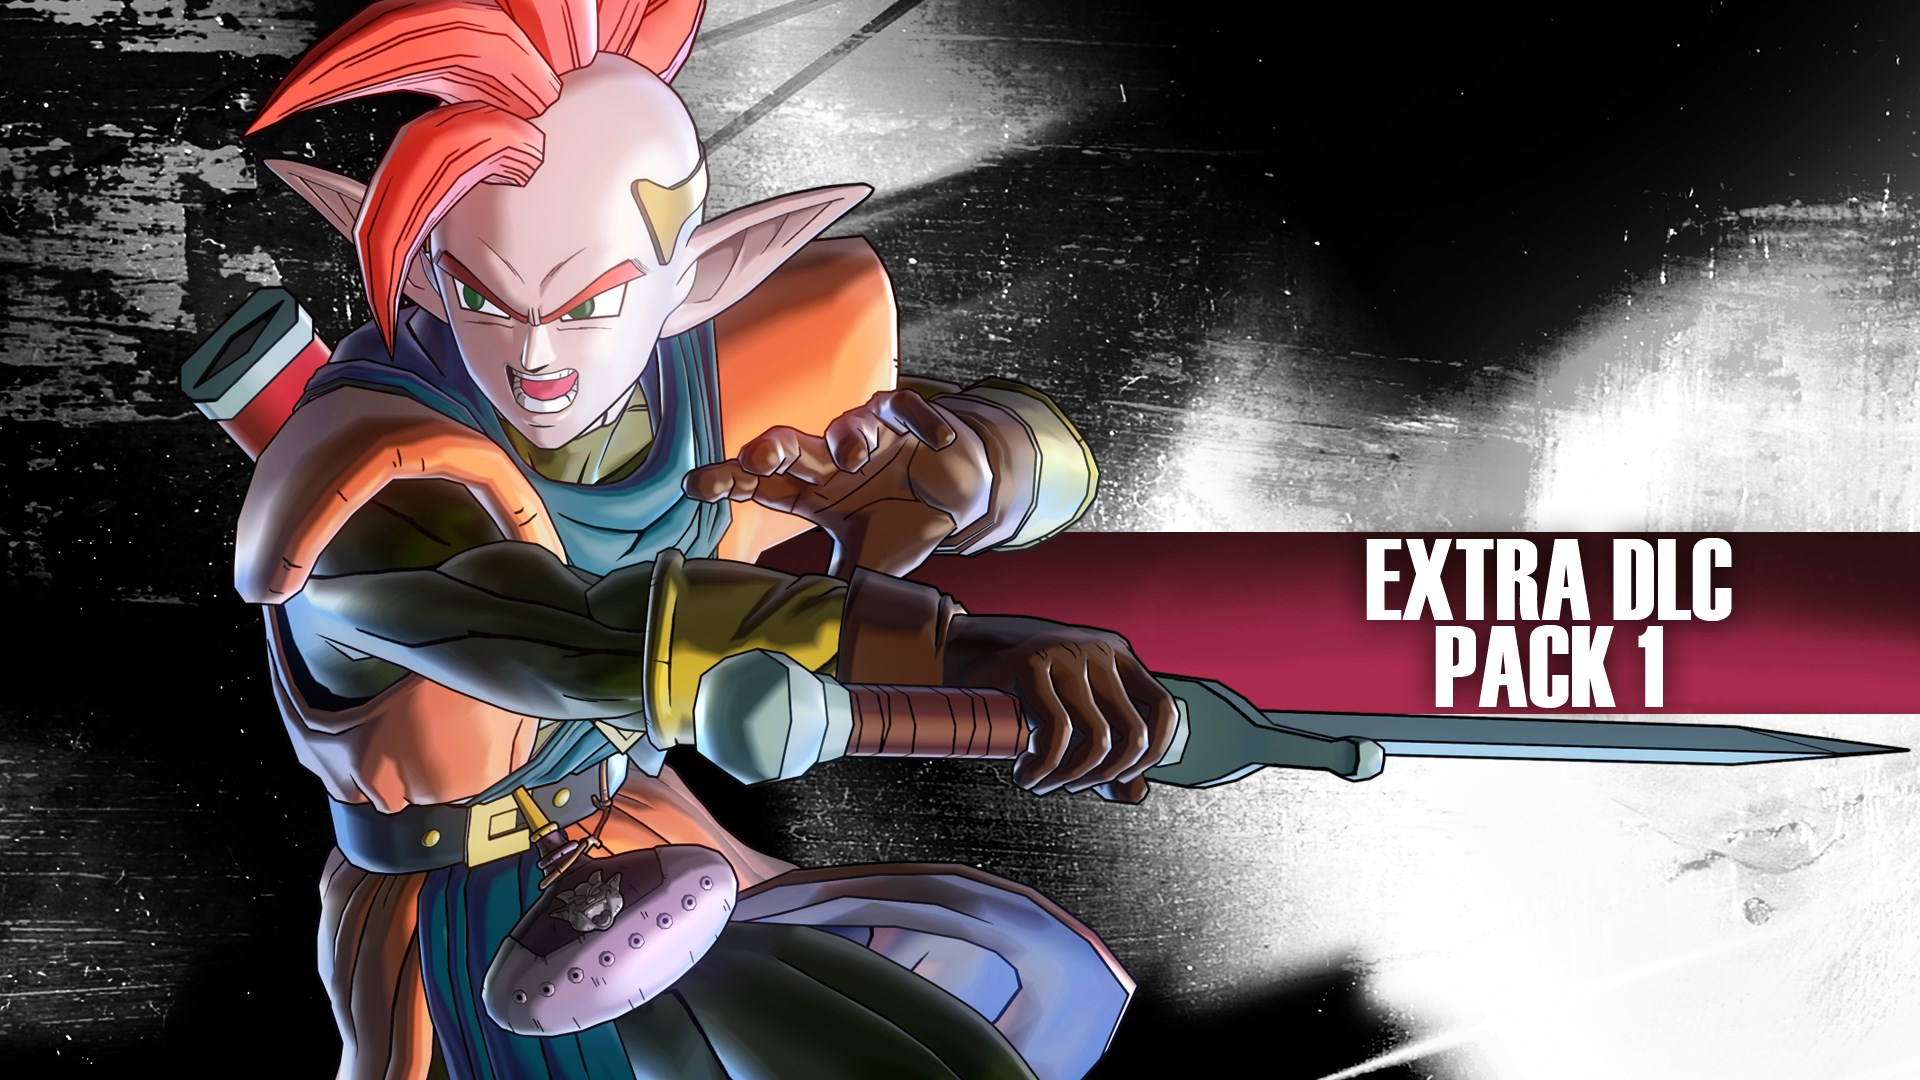 DRAGON BALL XENOVERSE 2 - Extra DLC Pack 1